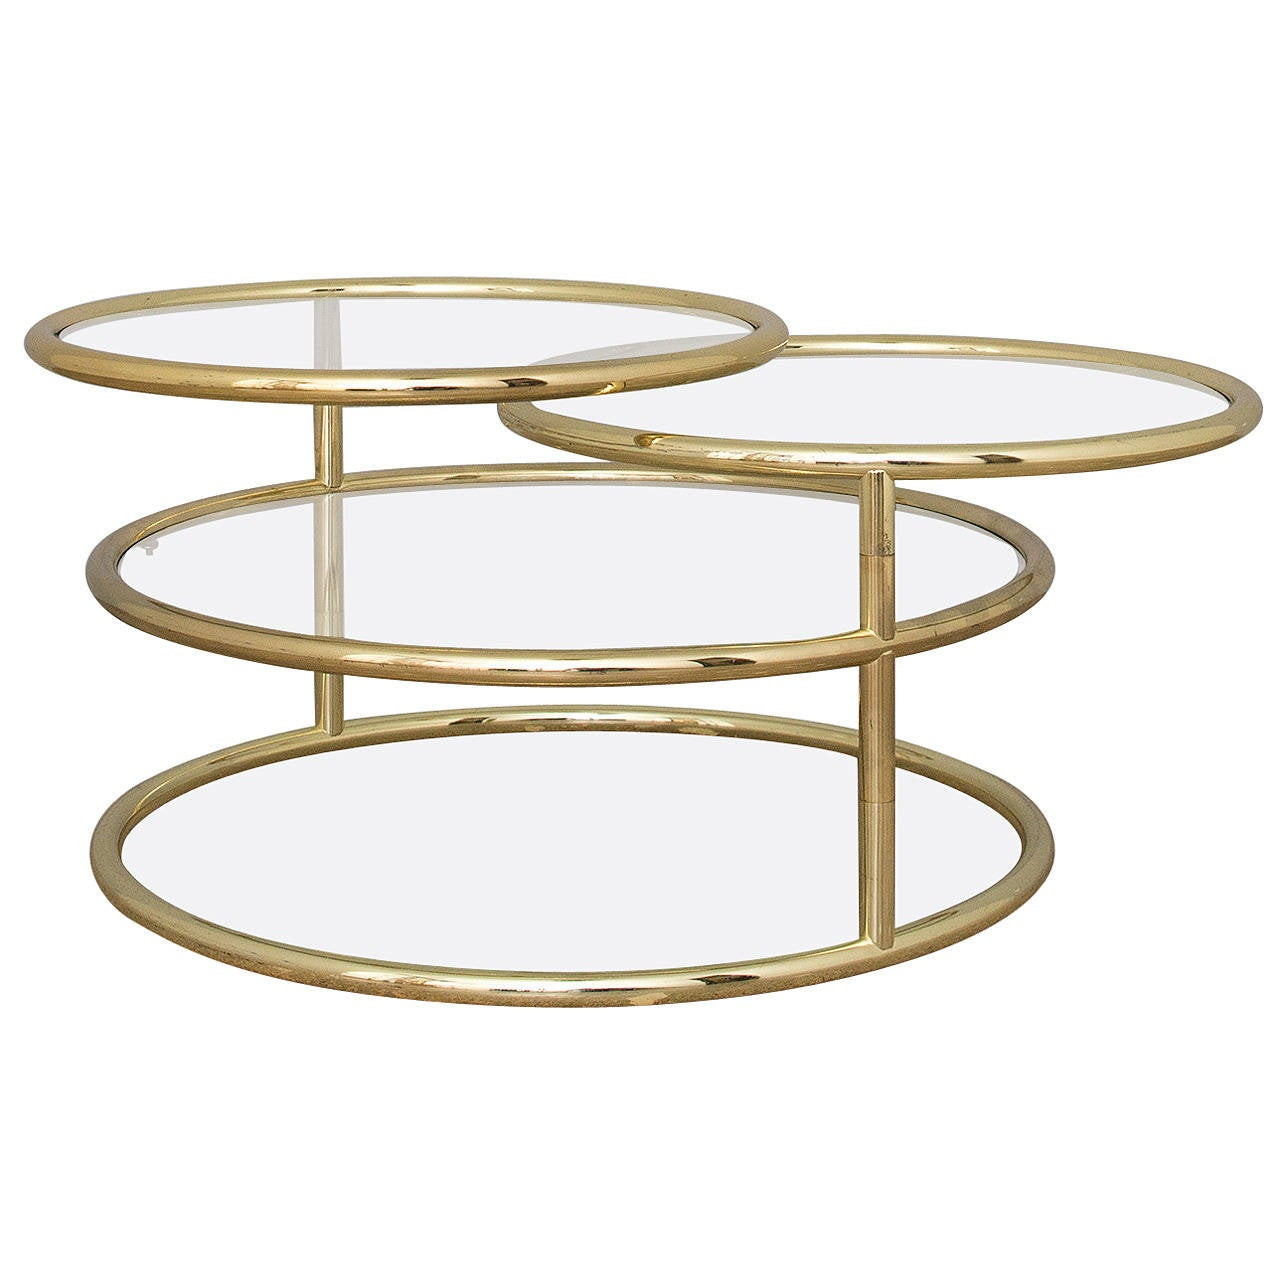 Save Or Splurge Brass And Glass Coffee Tables: 2055472_l.jpeg